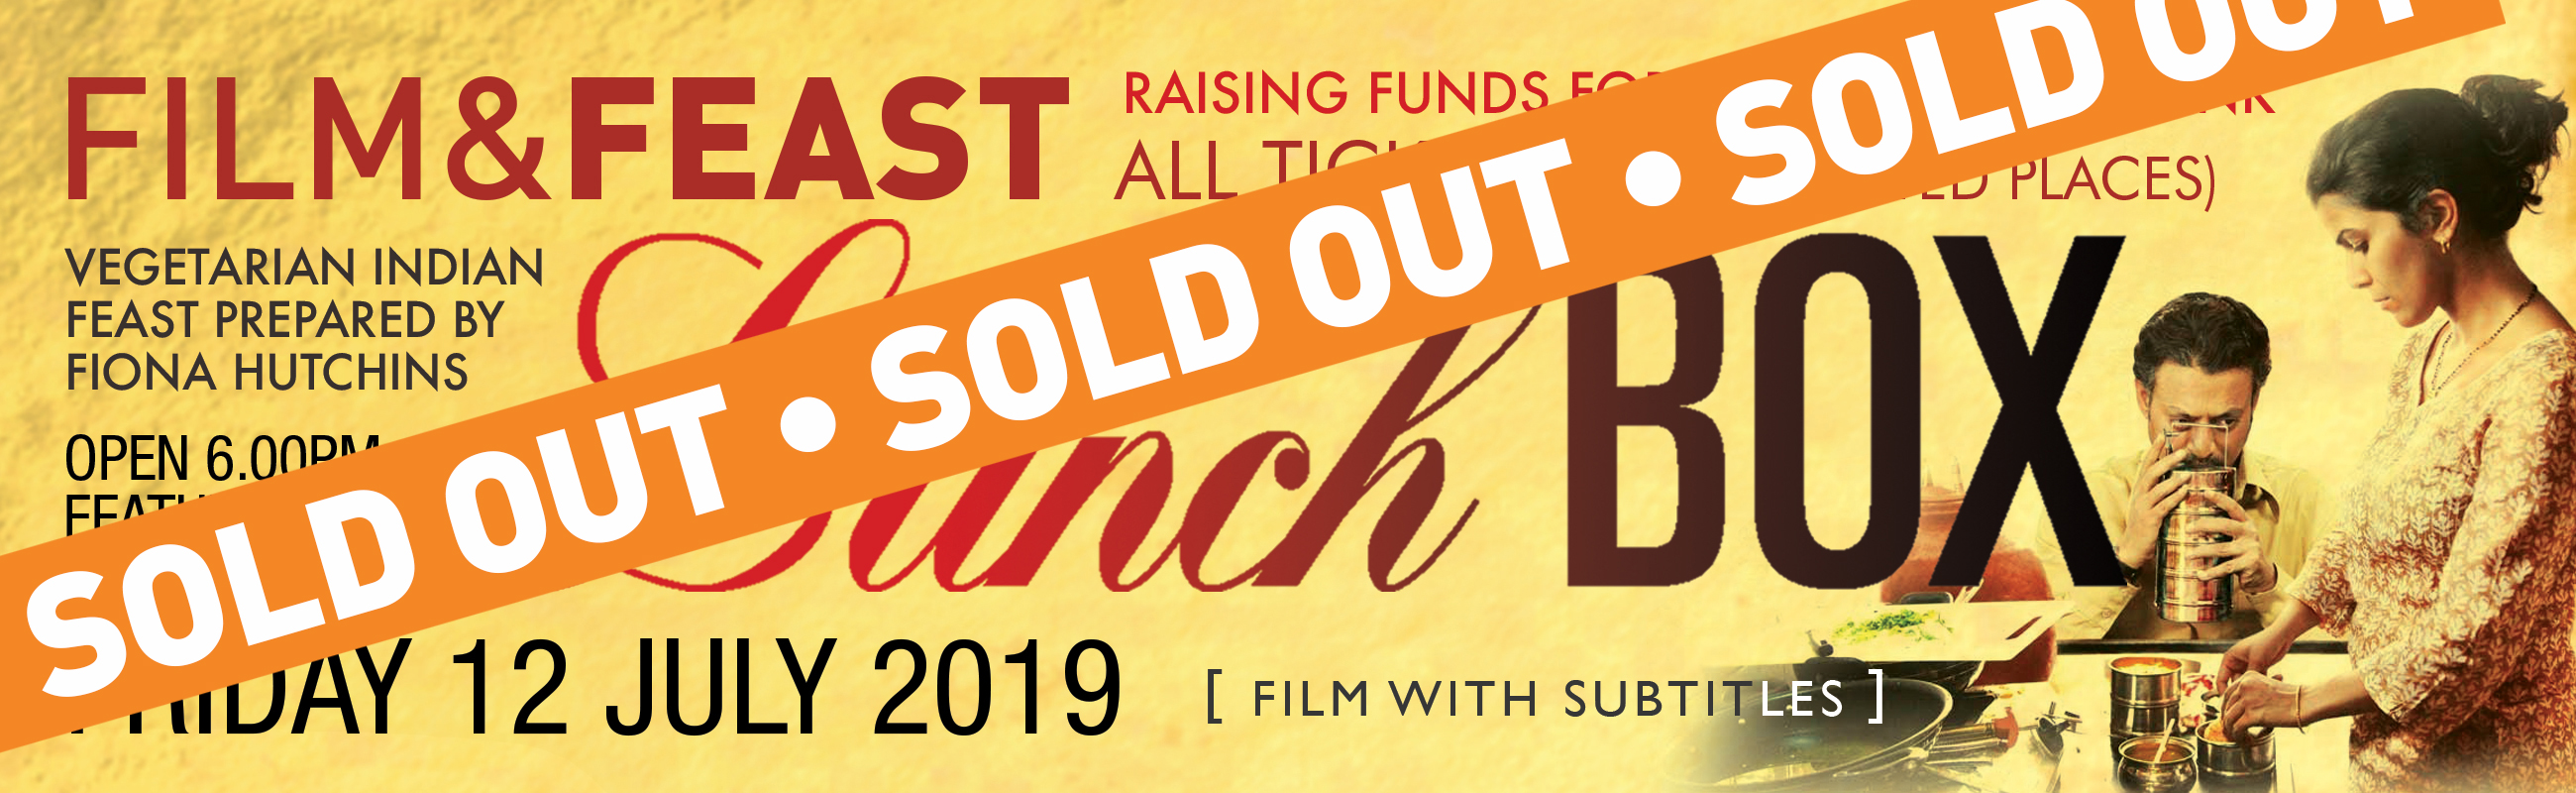 SLIDER-SEASON-8-LUNCHBOX-sold-out